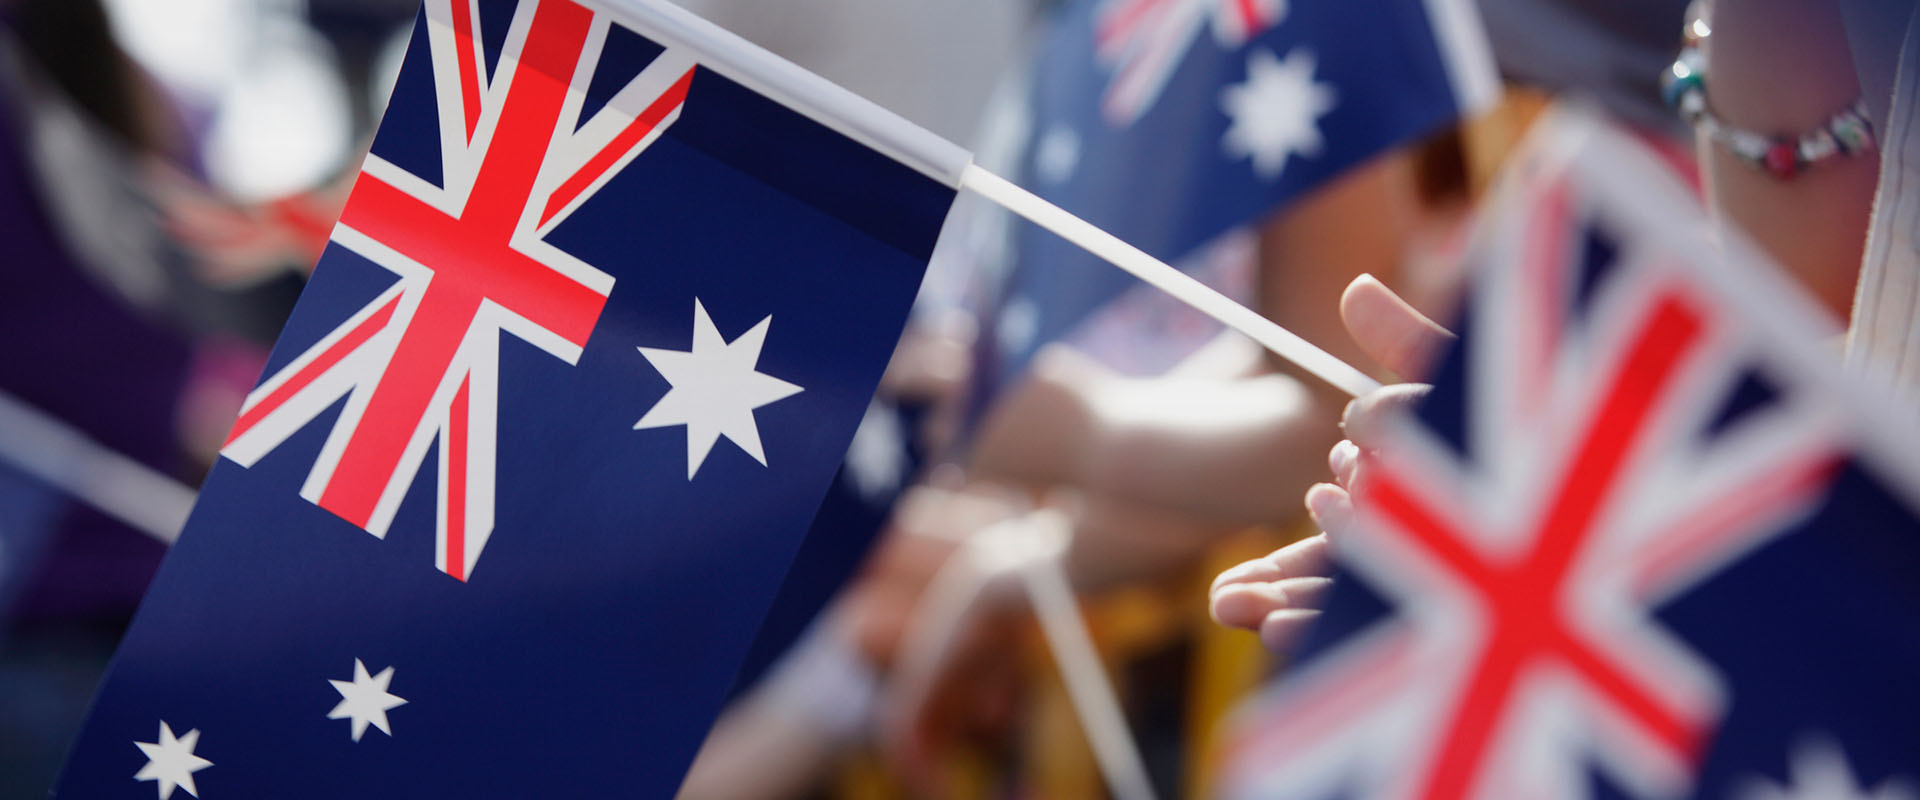 image-for-australia-day-operating-hours